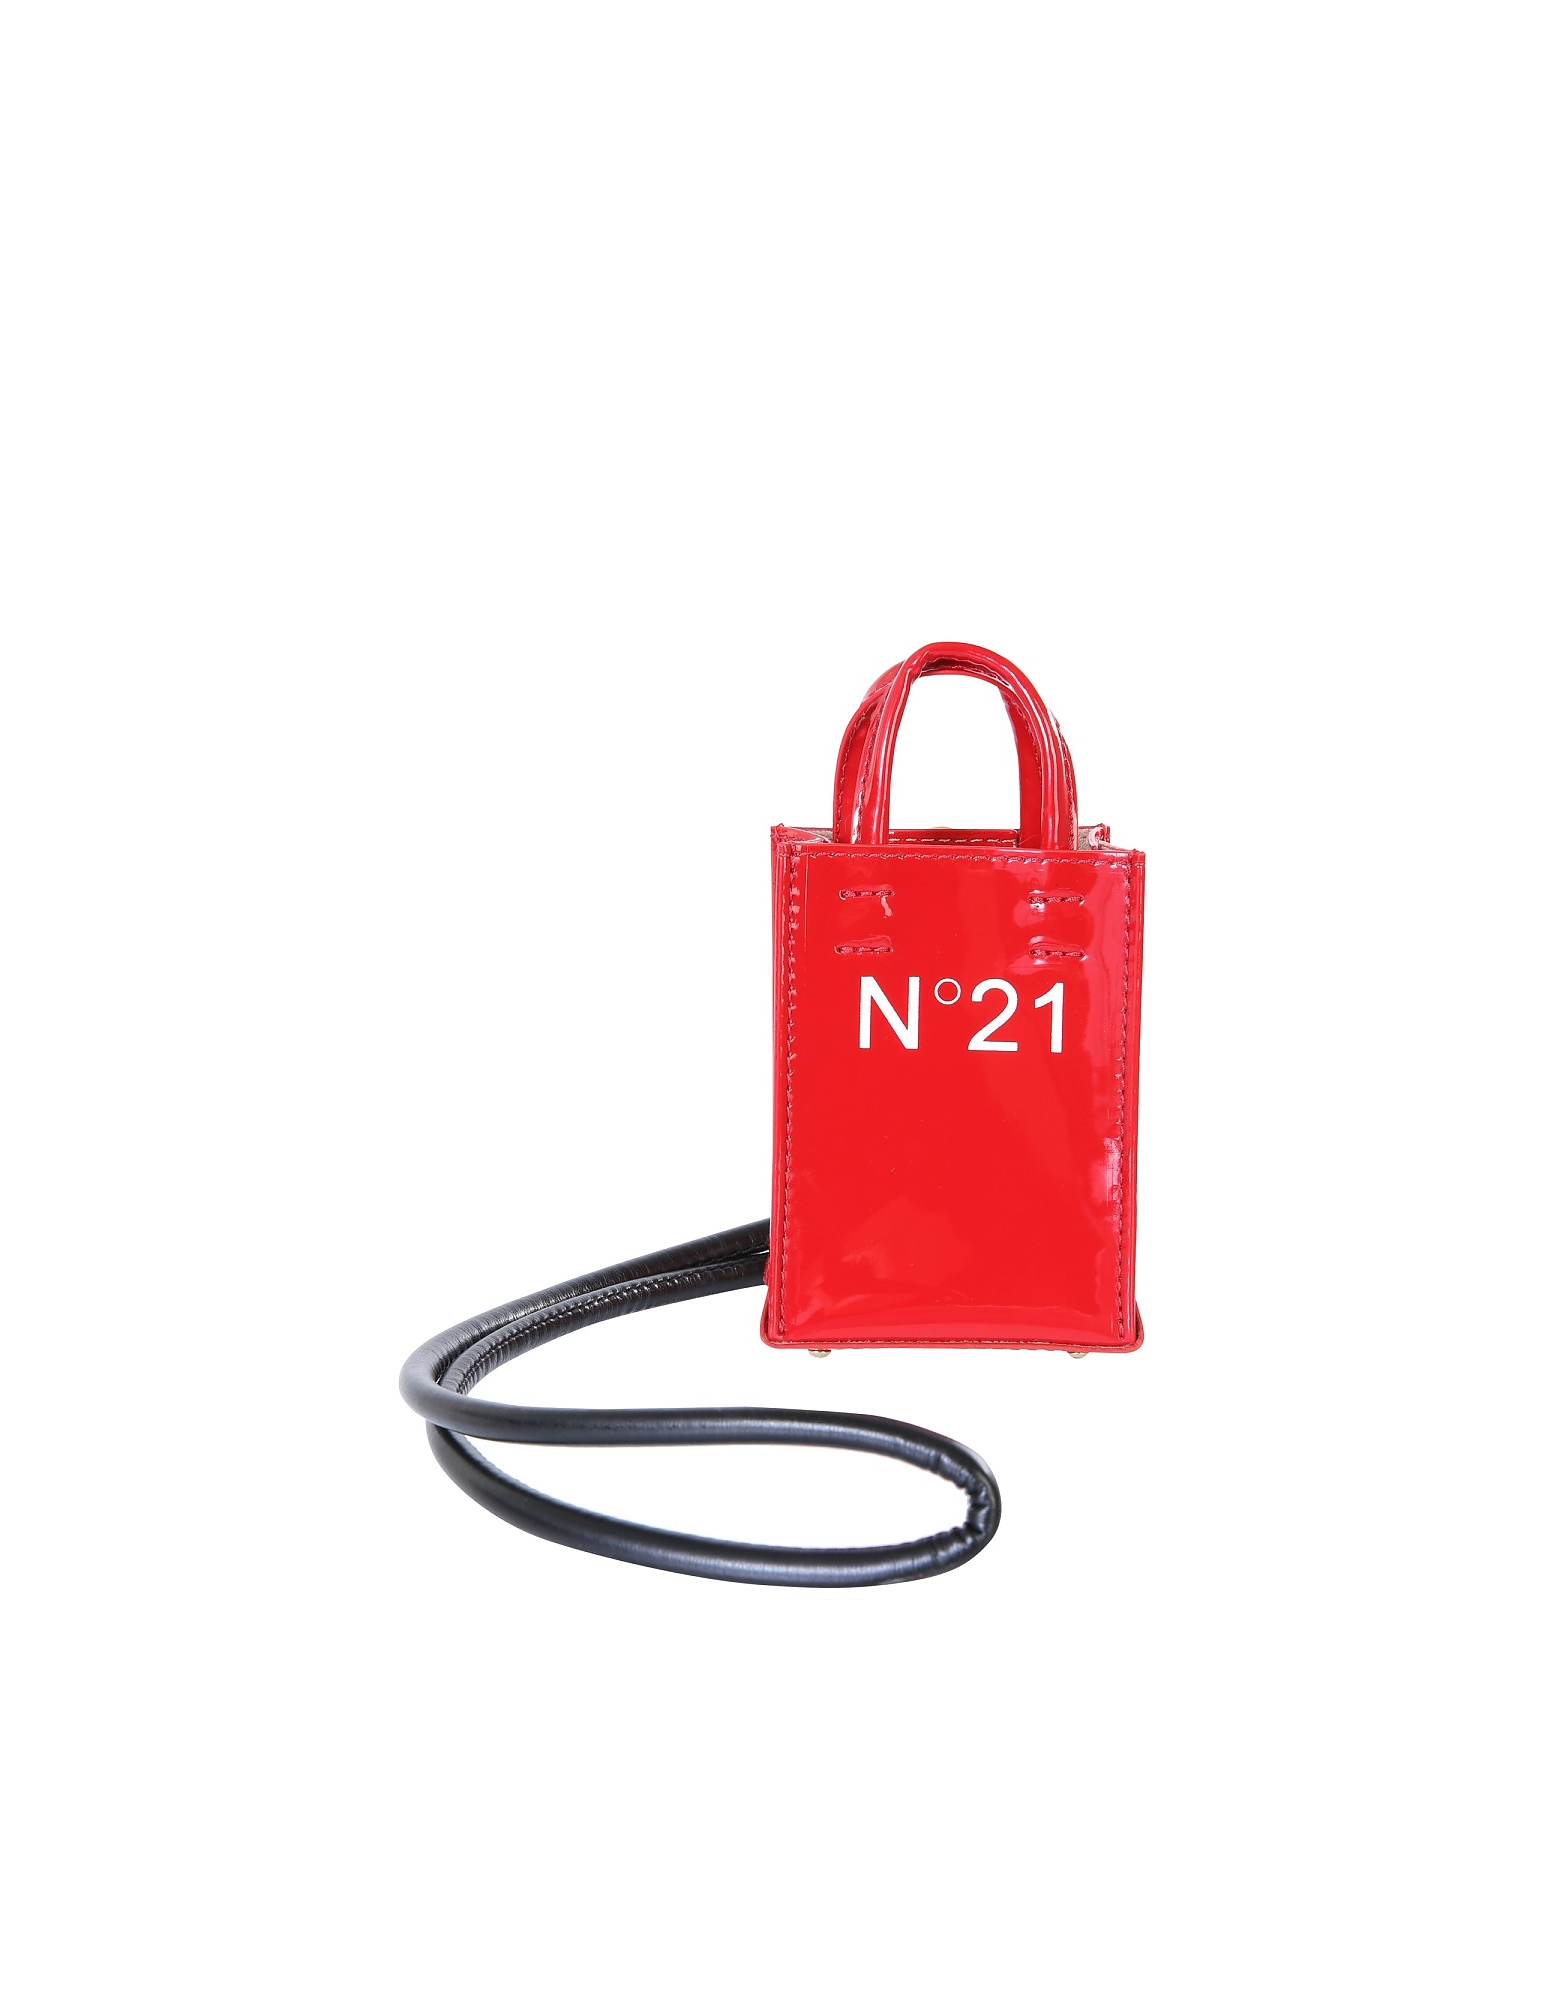 N°21 NANO SHOPPING BAG WITH LOGO